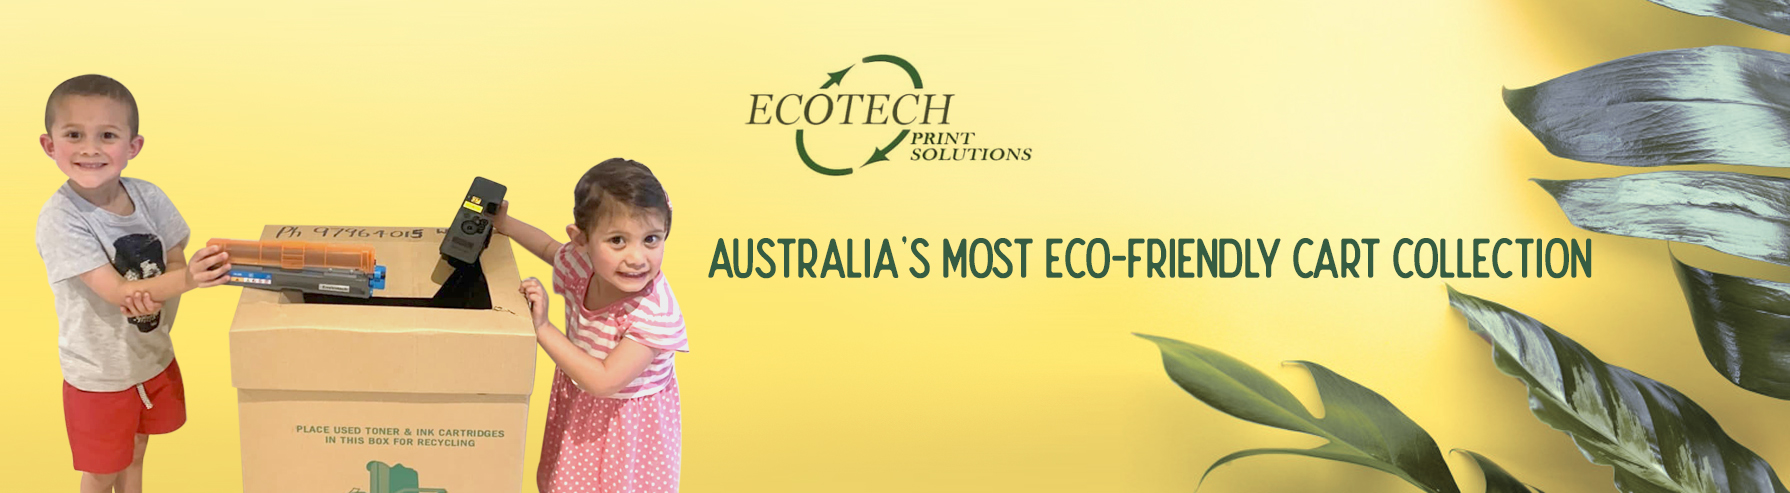 Why Recycle with Ecotech Print Solutions